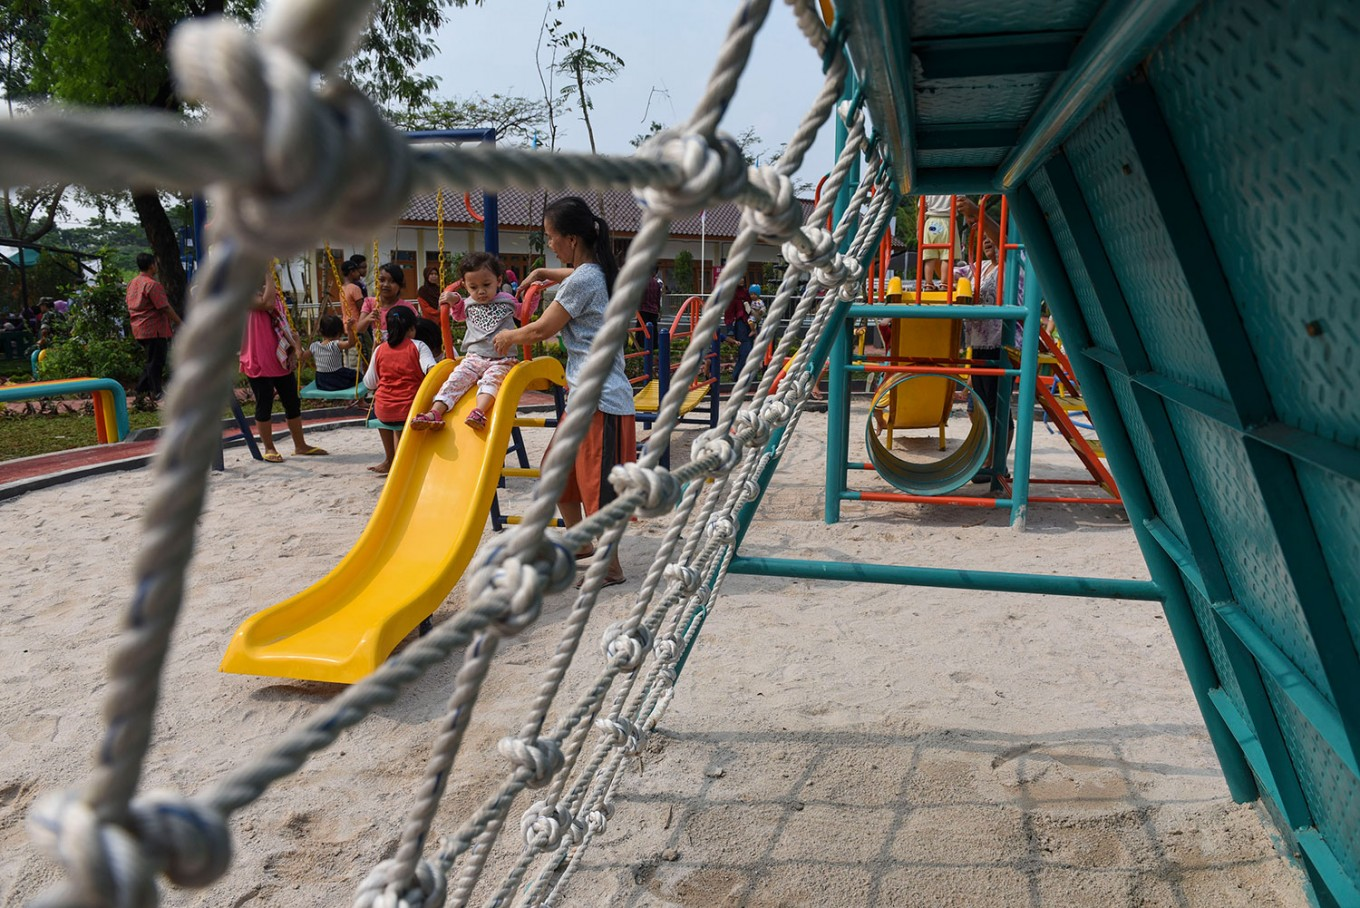 Jakarta administration aims to build 200 more playgrounds this year